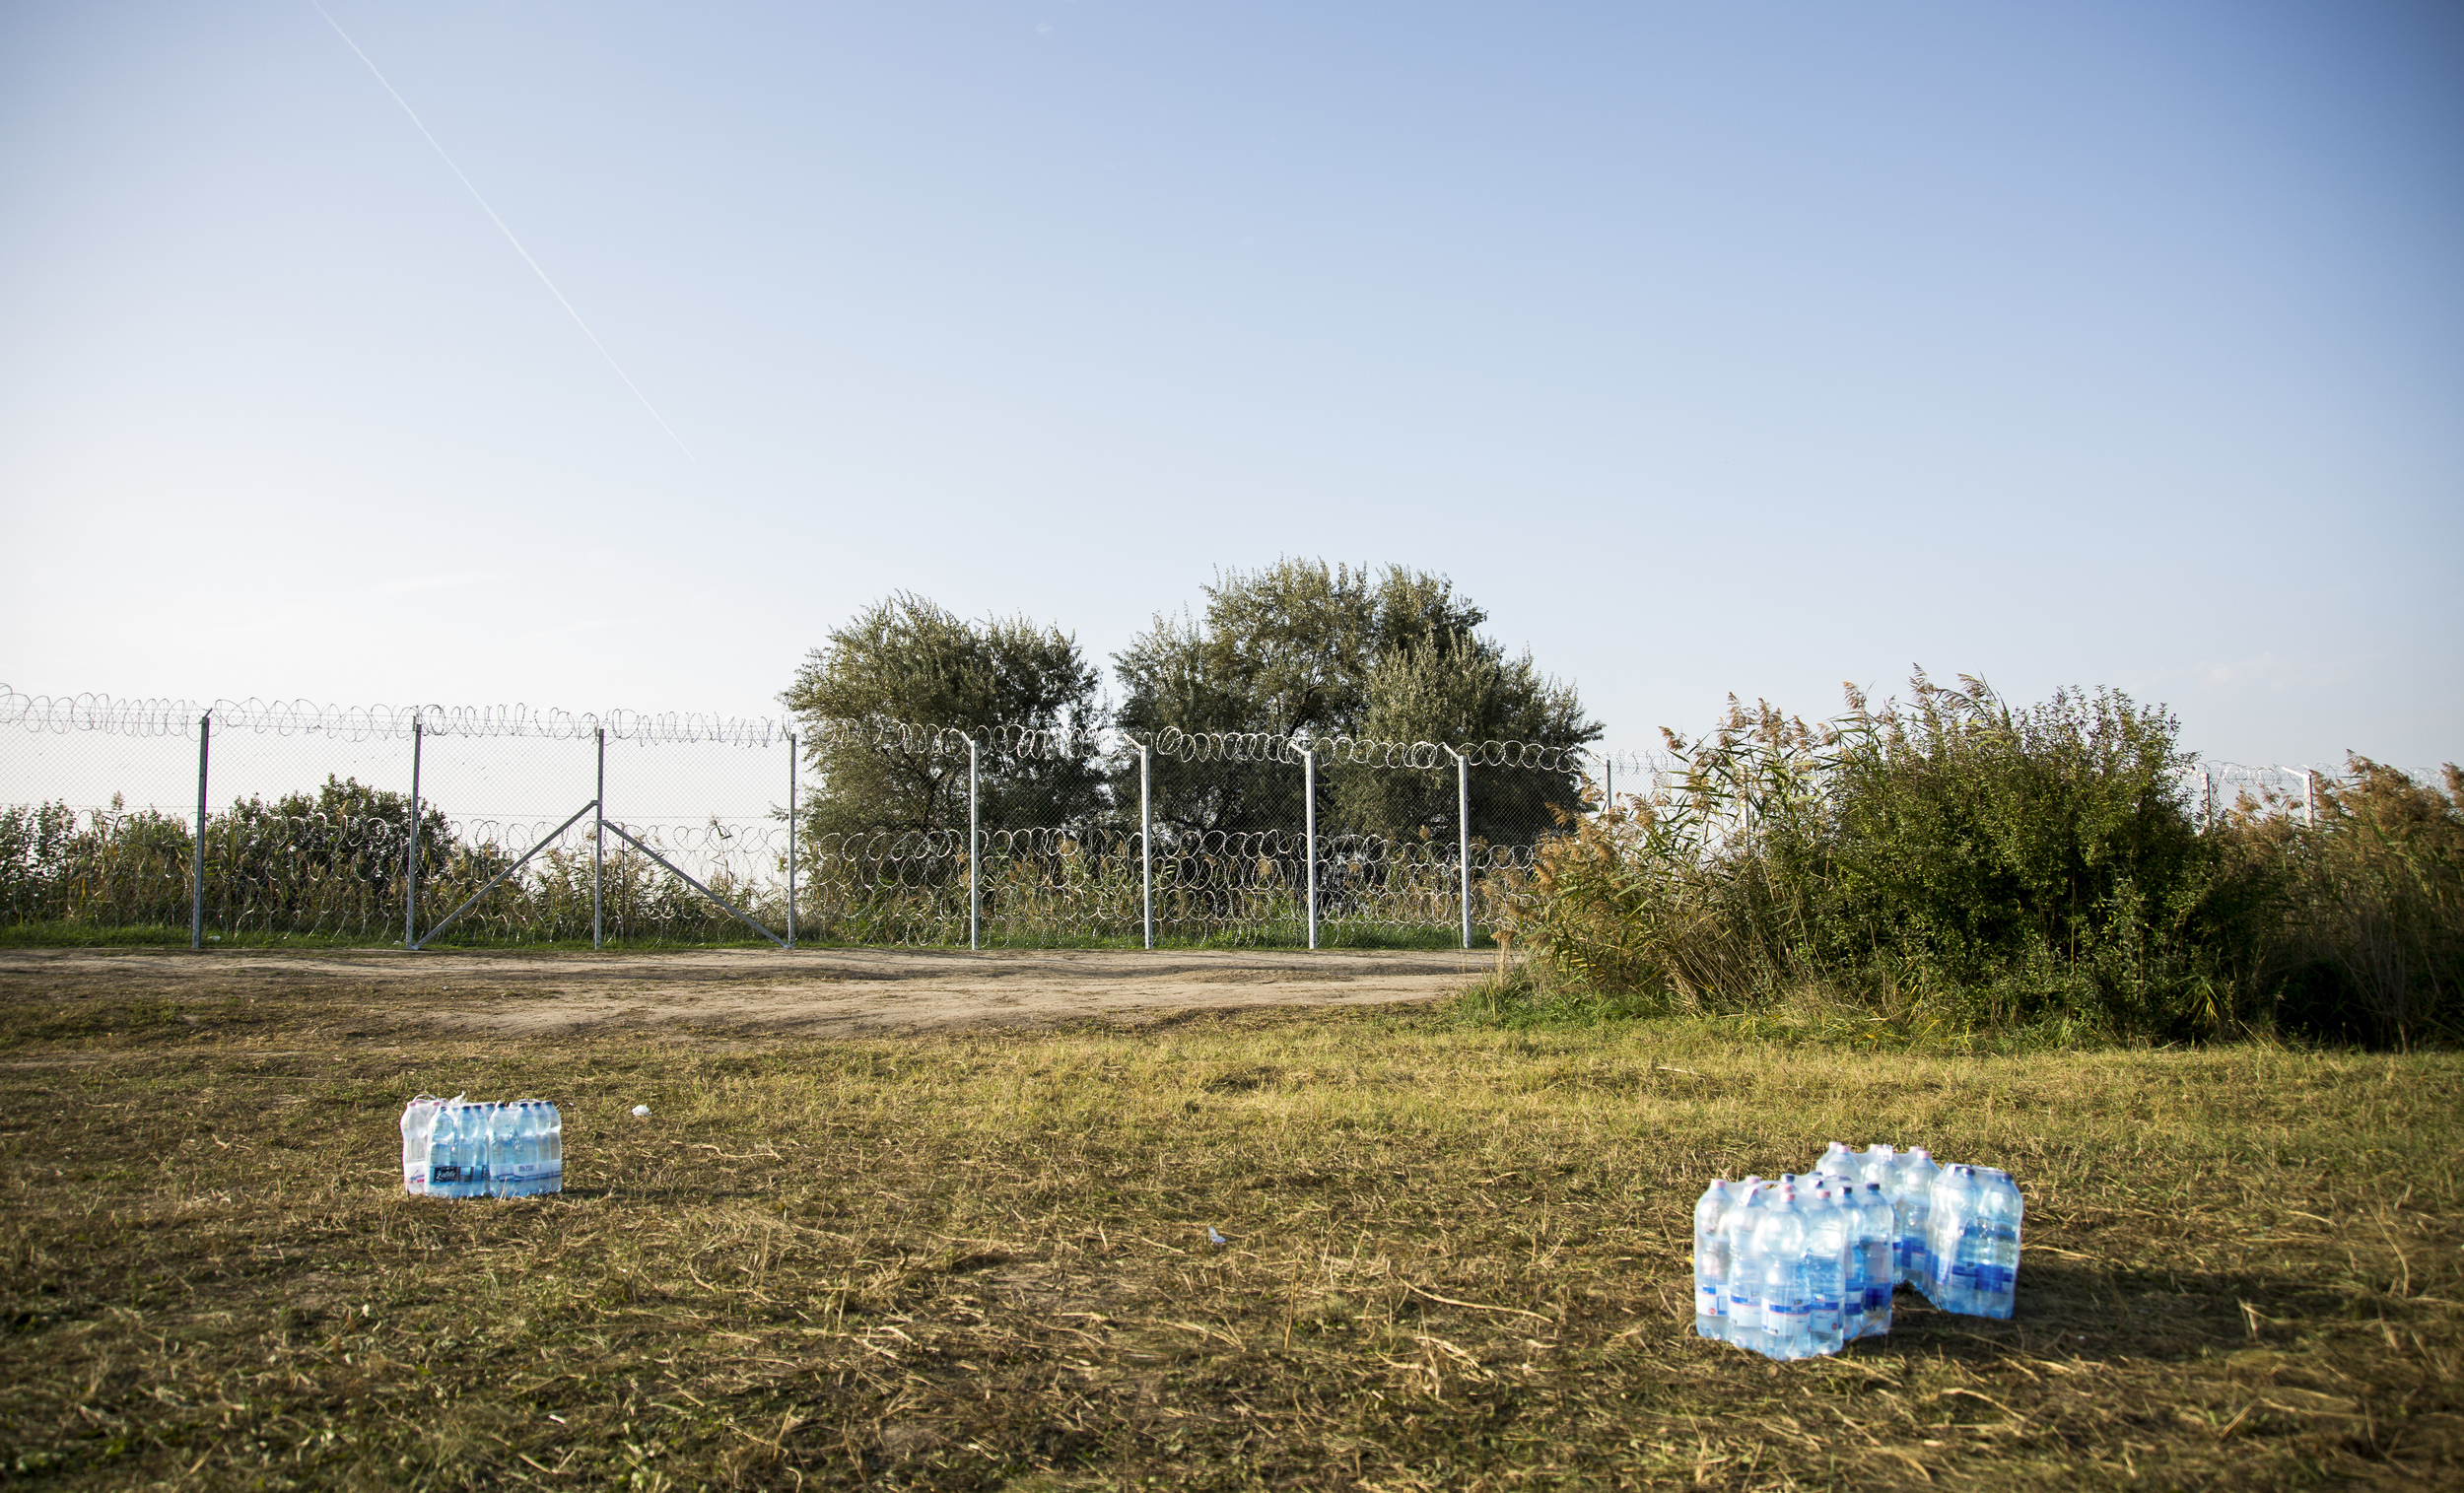 Water station for the police still guarding the border.